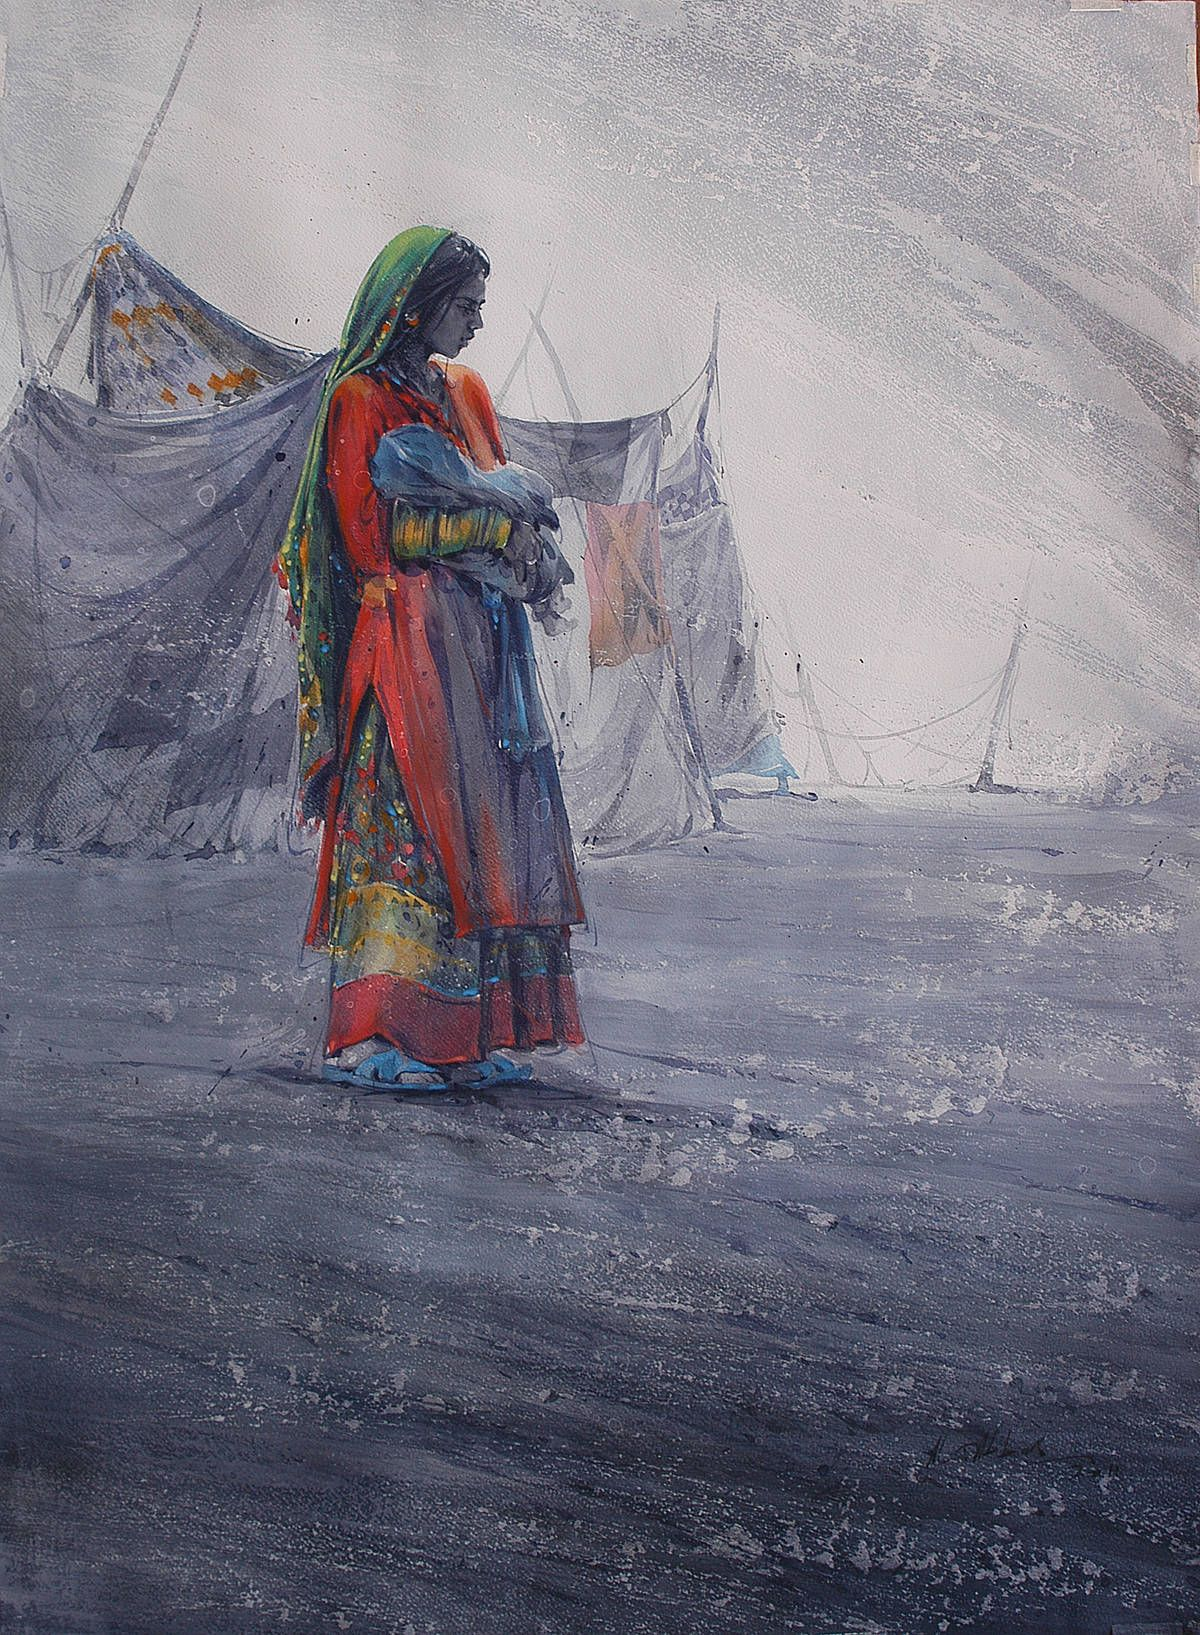 River Life Creative Art In Painting By Charusohel Rana In